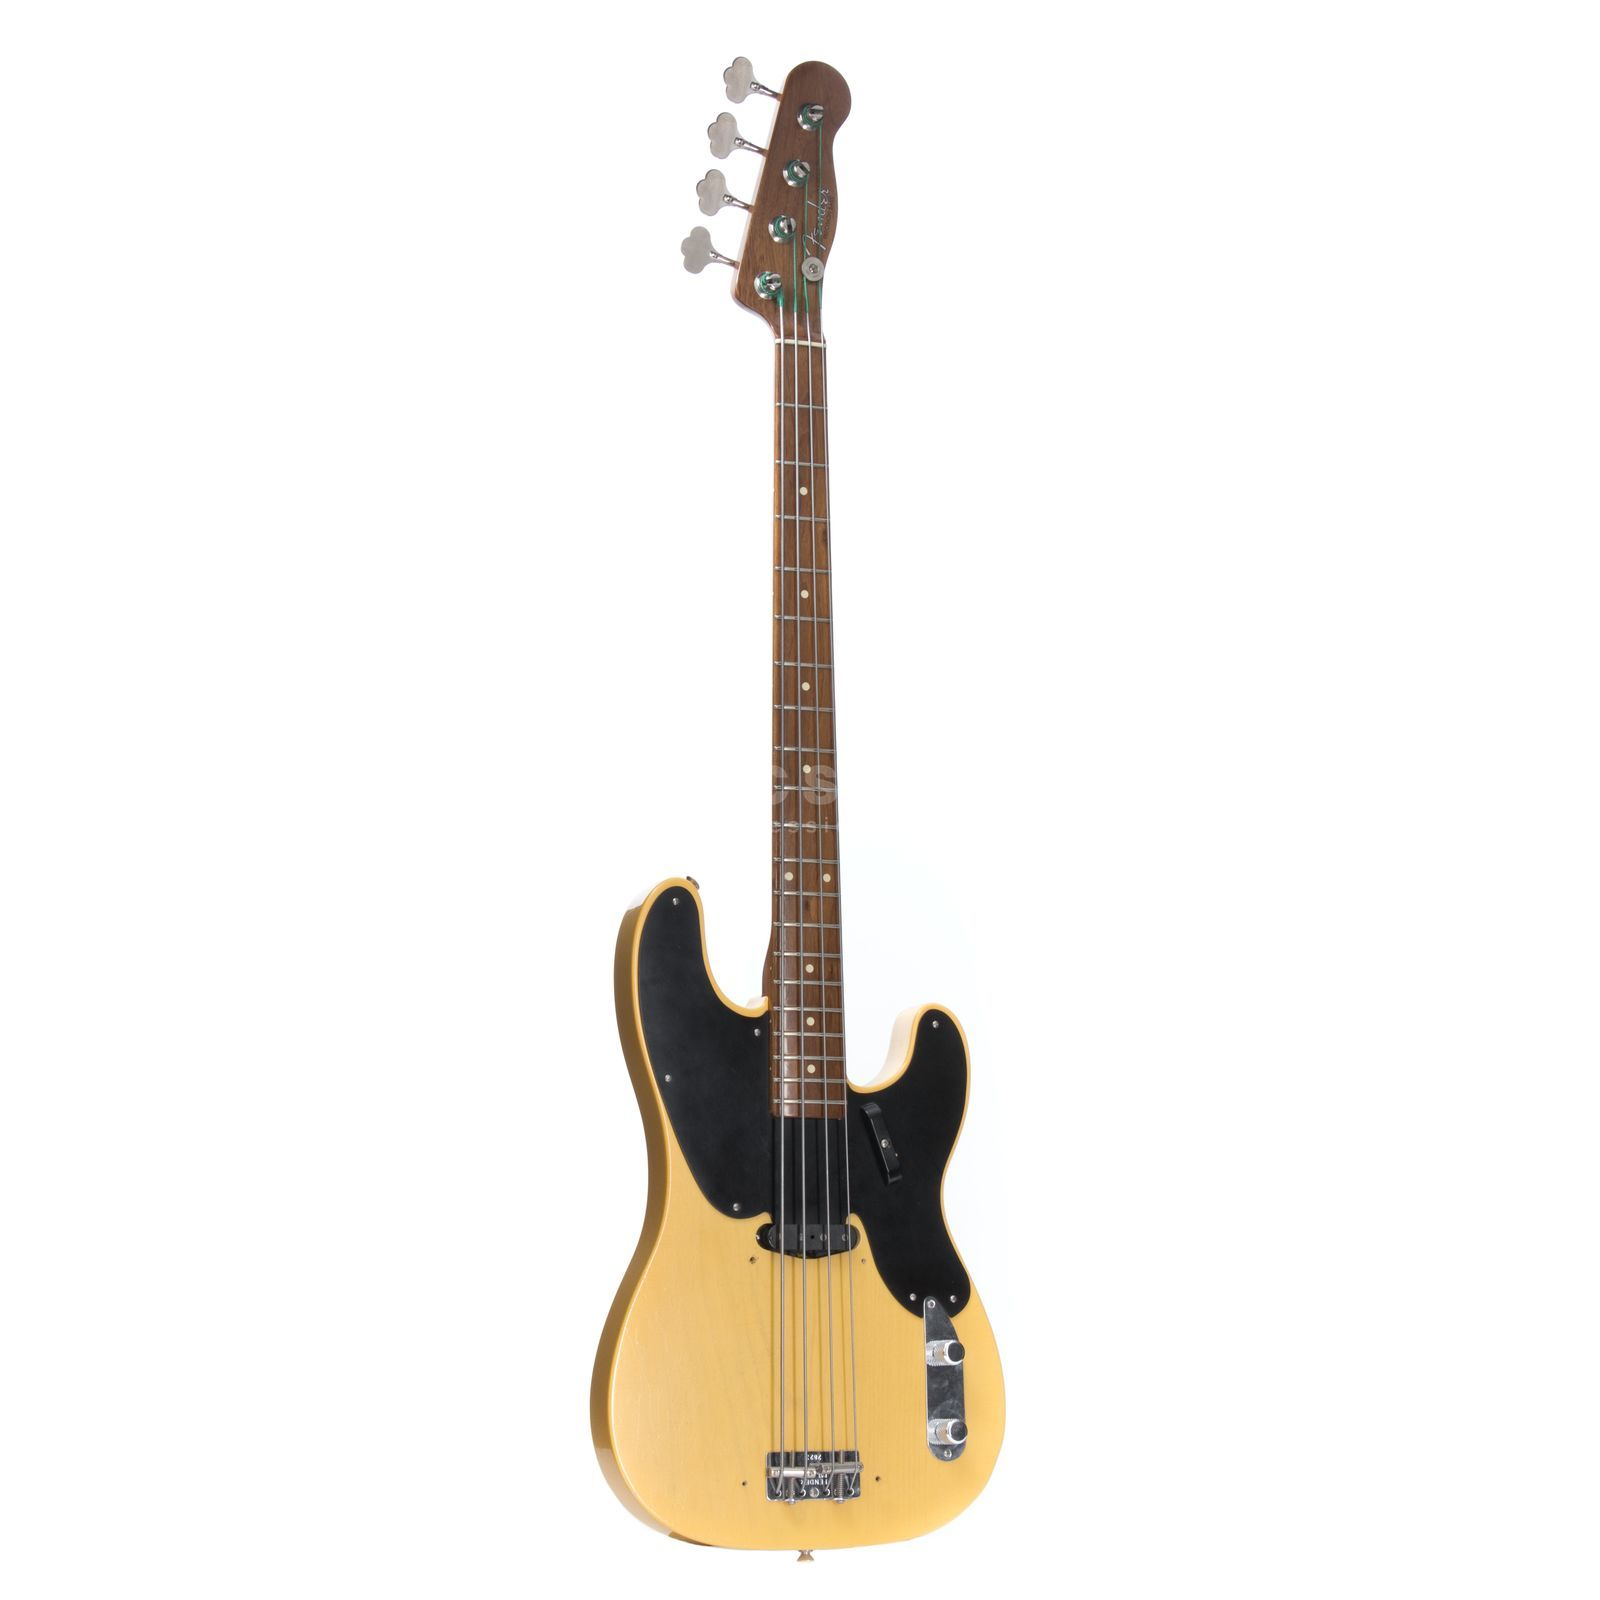 Fender CS '51 P-Bass Walnut Neck NBL Nocaster Blonde, S#:2823 Produktbillede